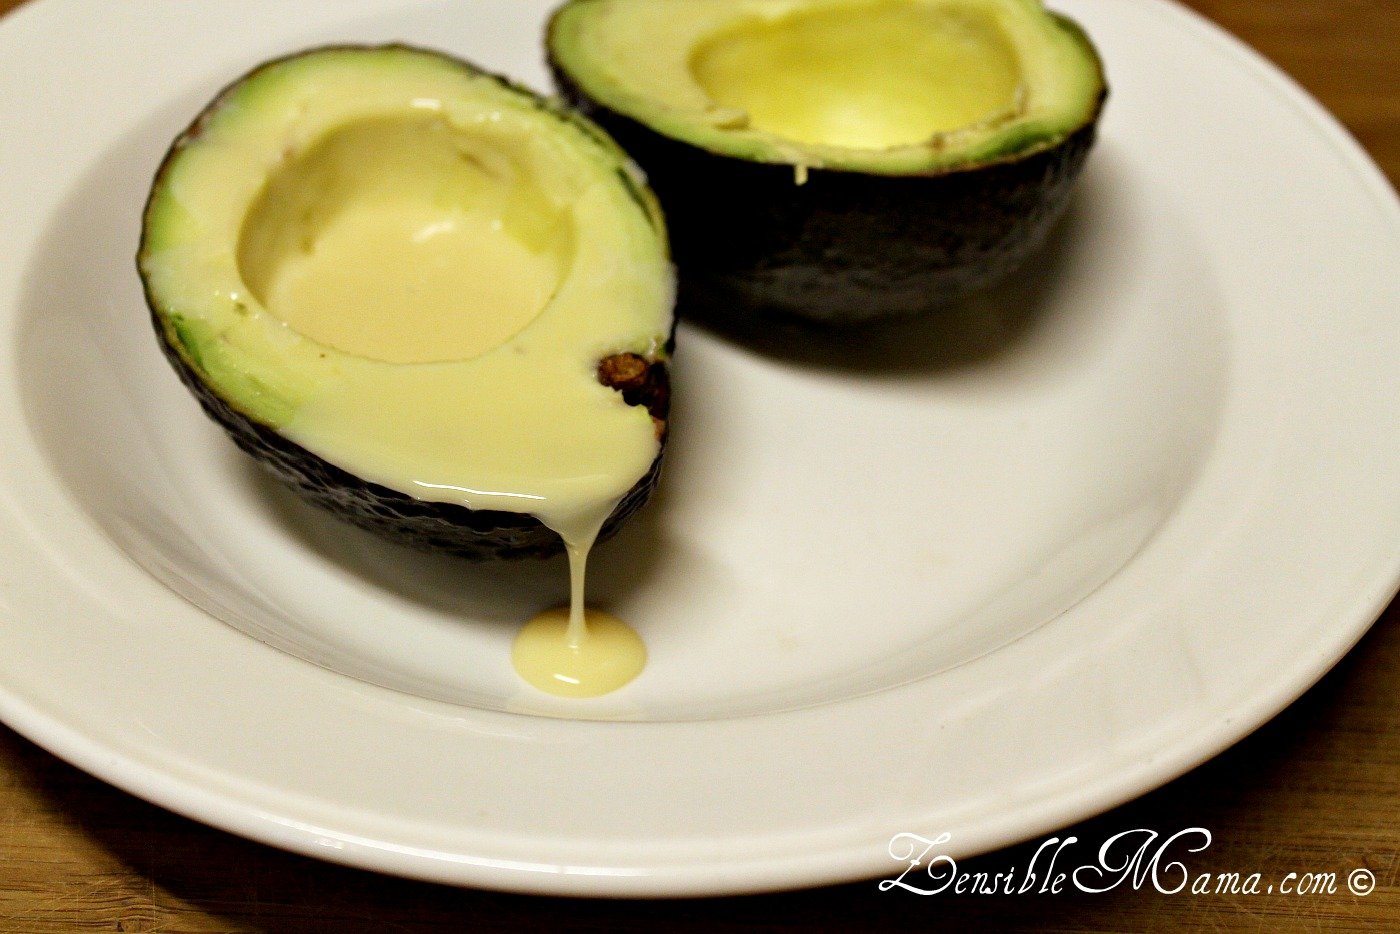 how to eat avocado by itself